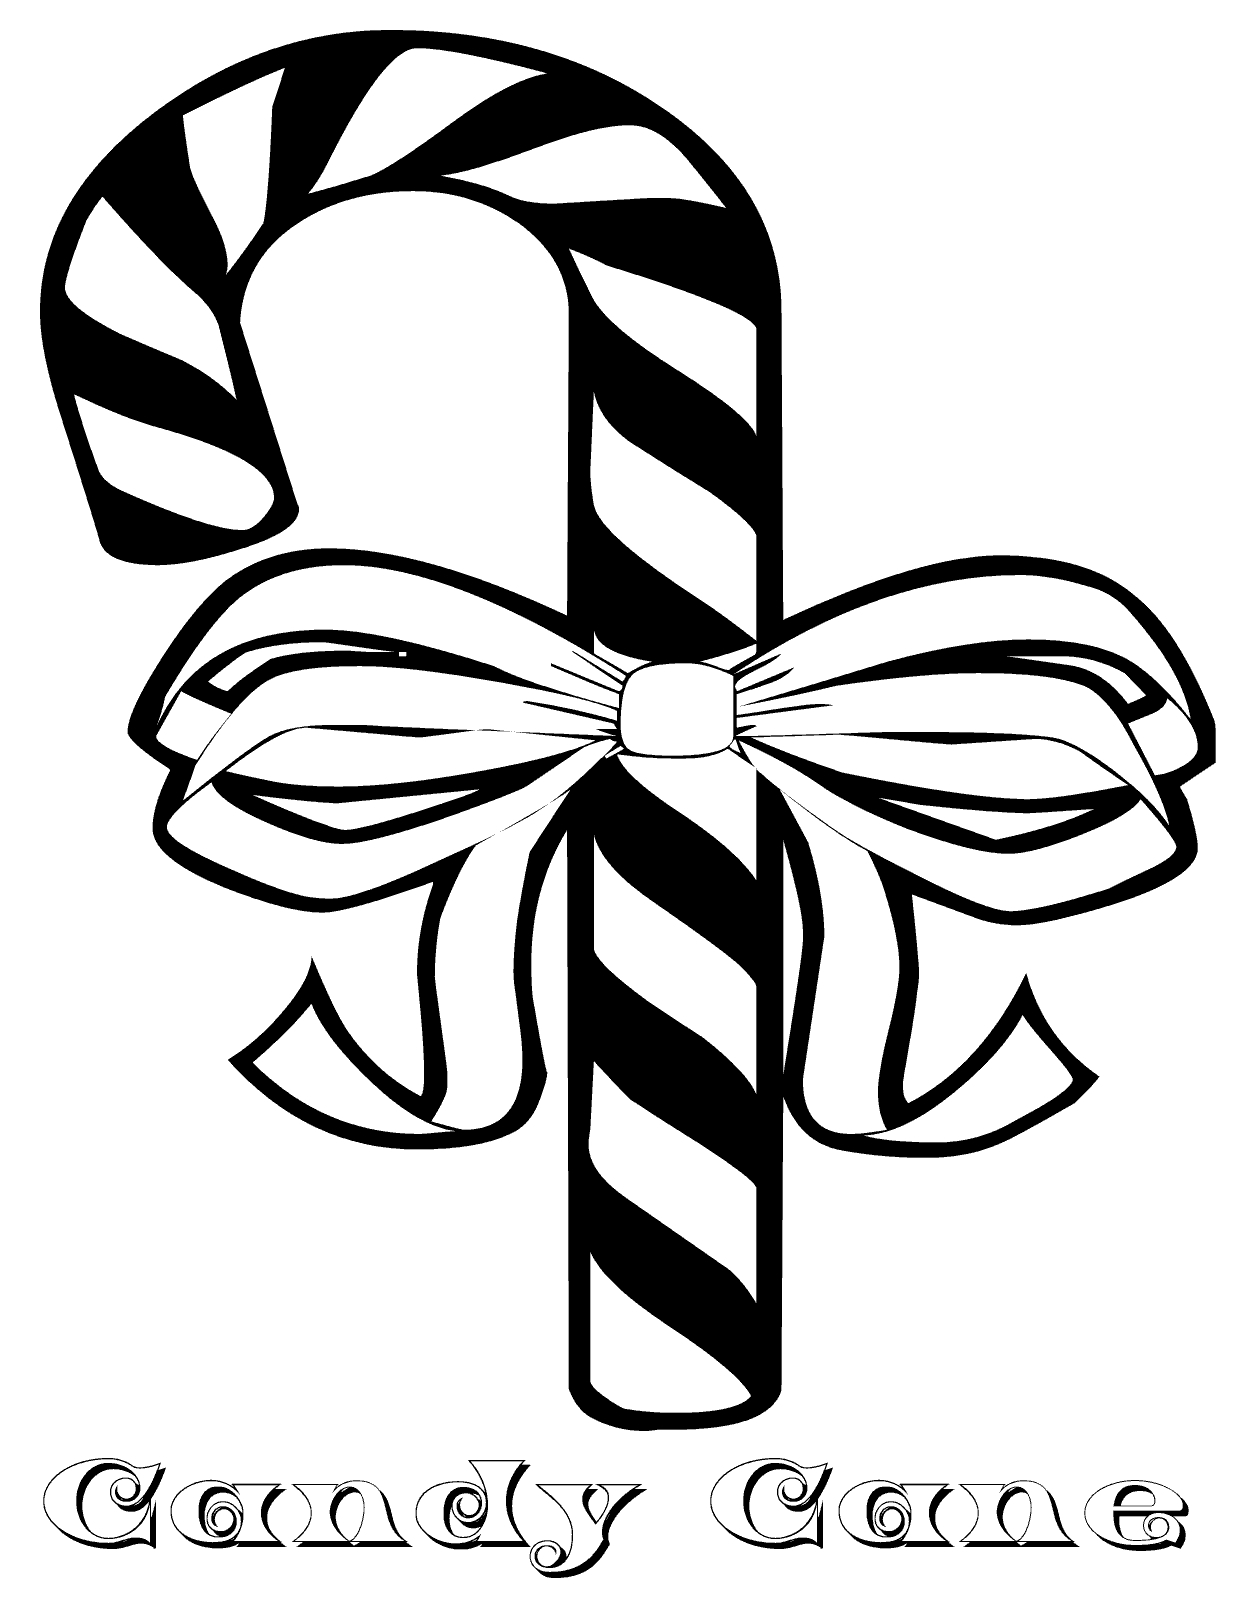 1240x1615 Candy Cane Coloring Pages Candy Coloring Pages Wonderful Candy